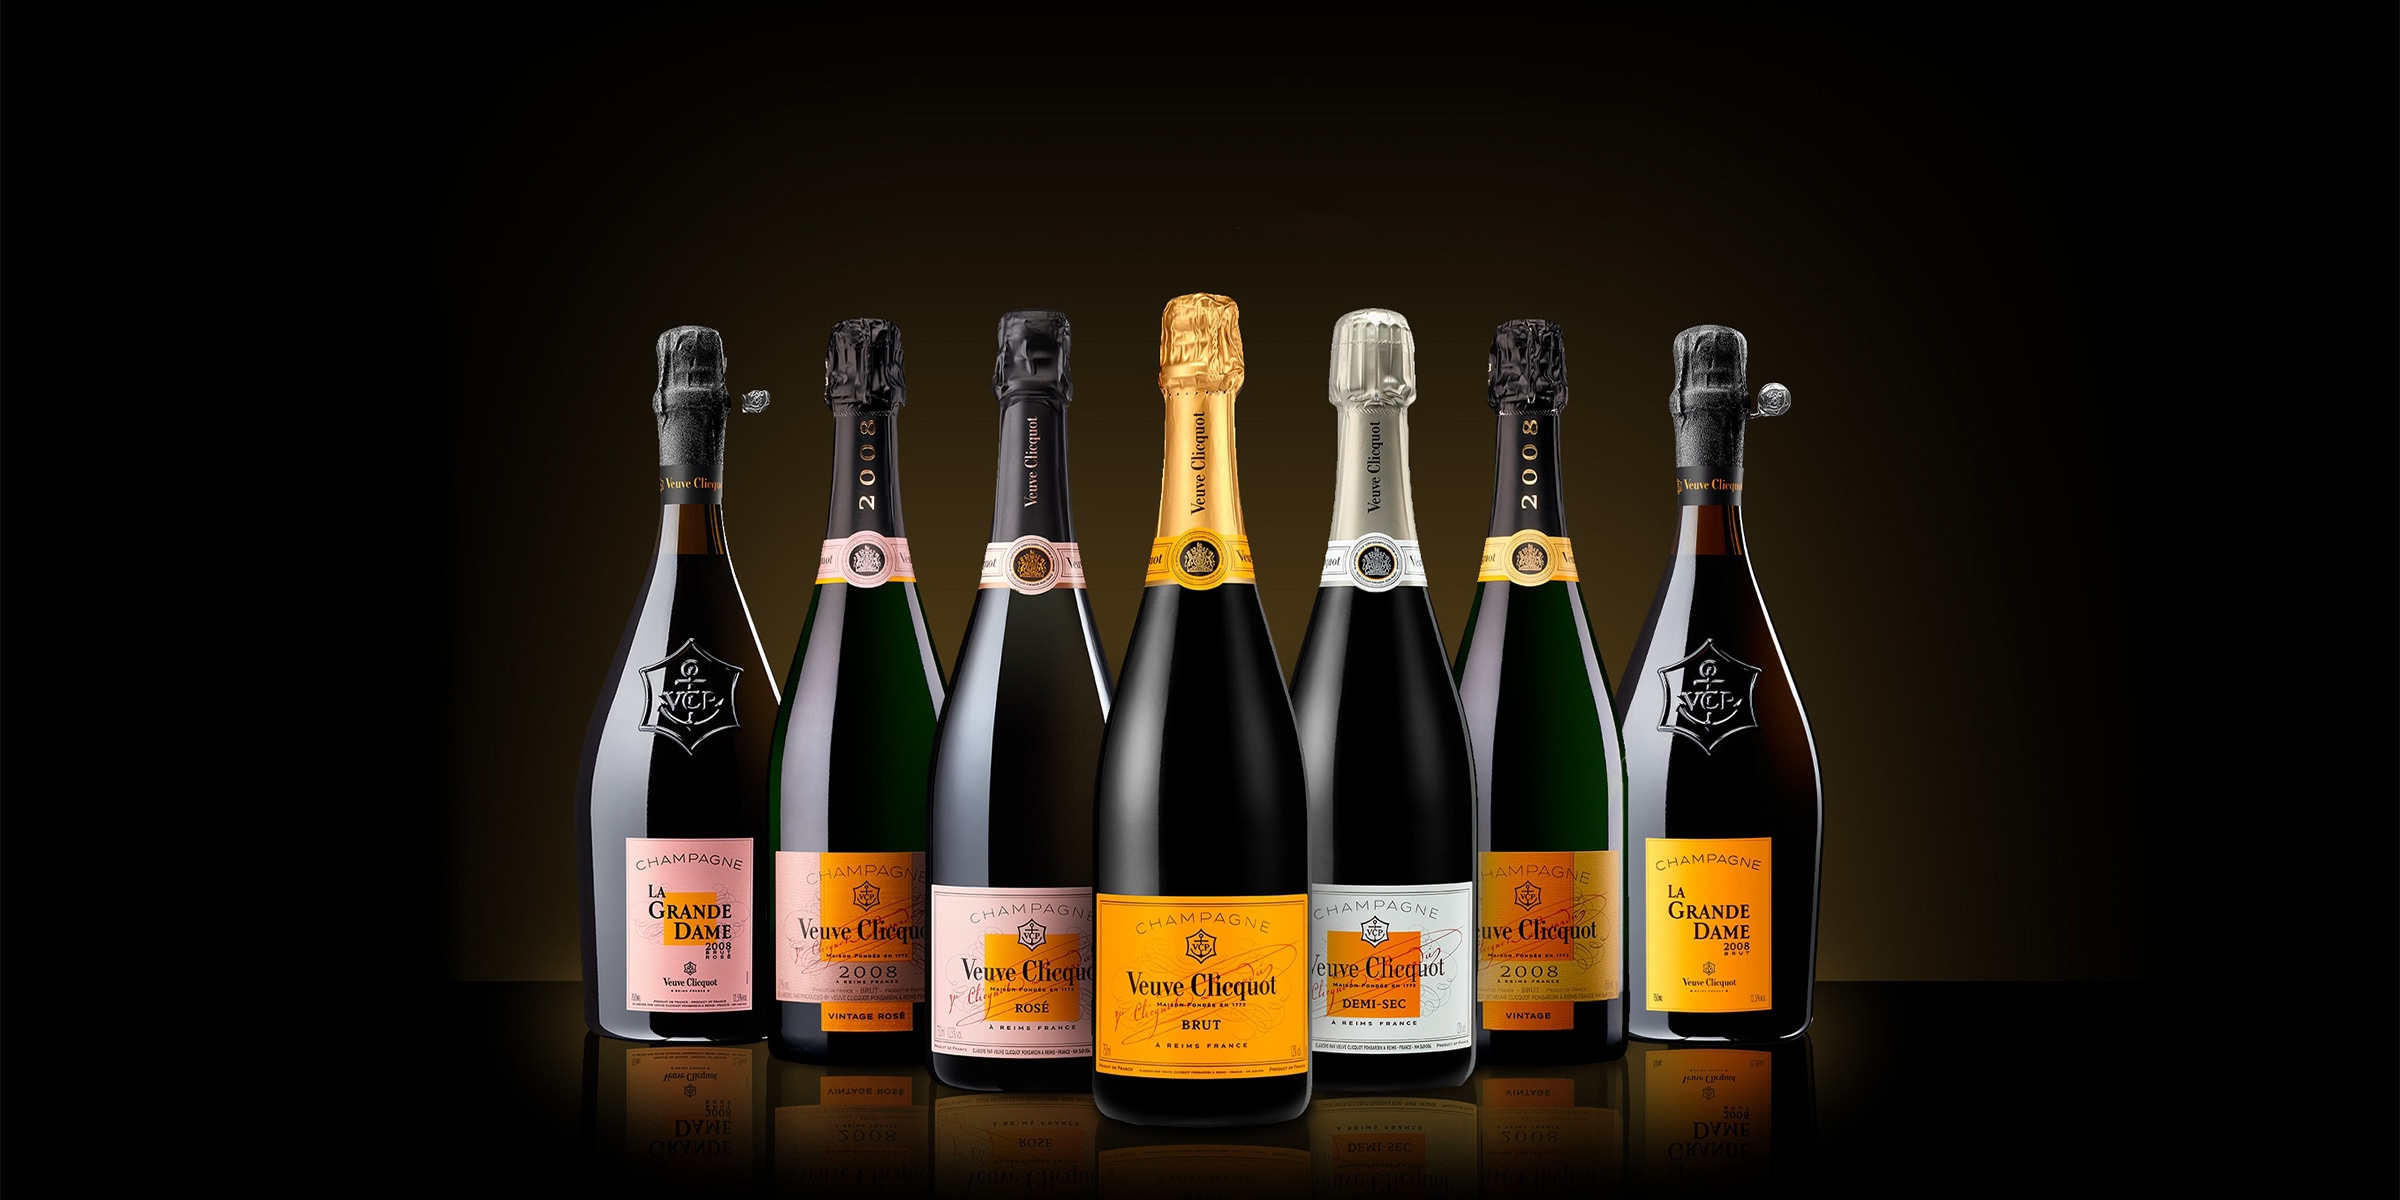 veuve clicquot luxury champagne - Luxe Digital